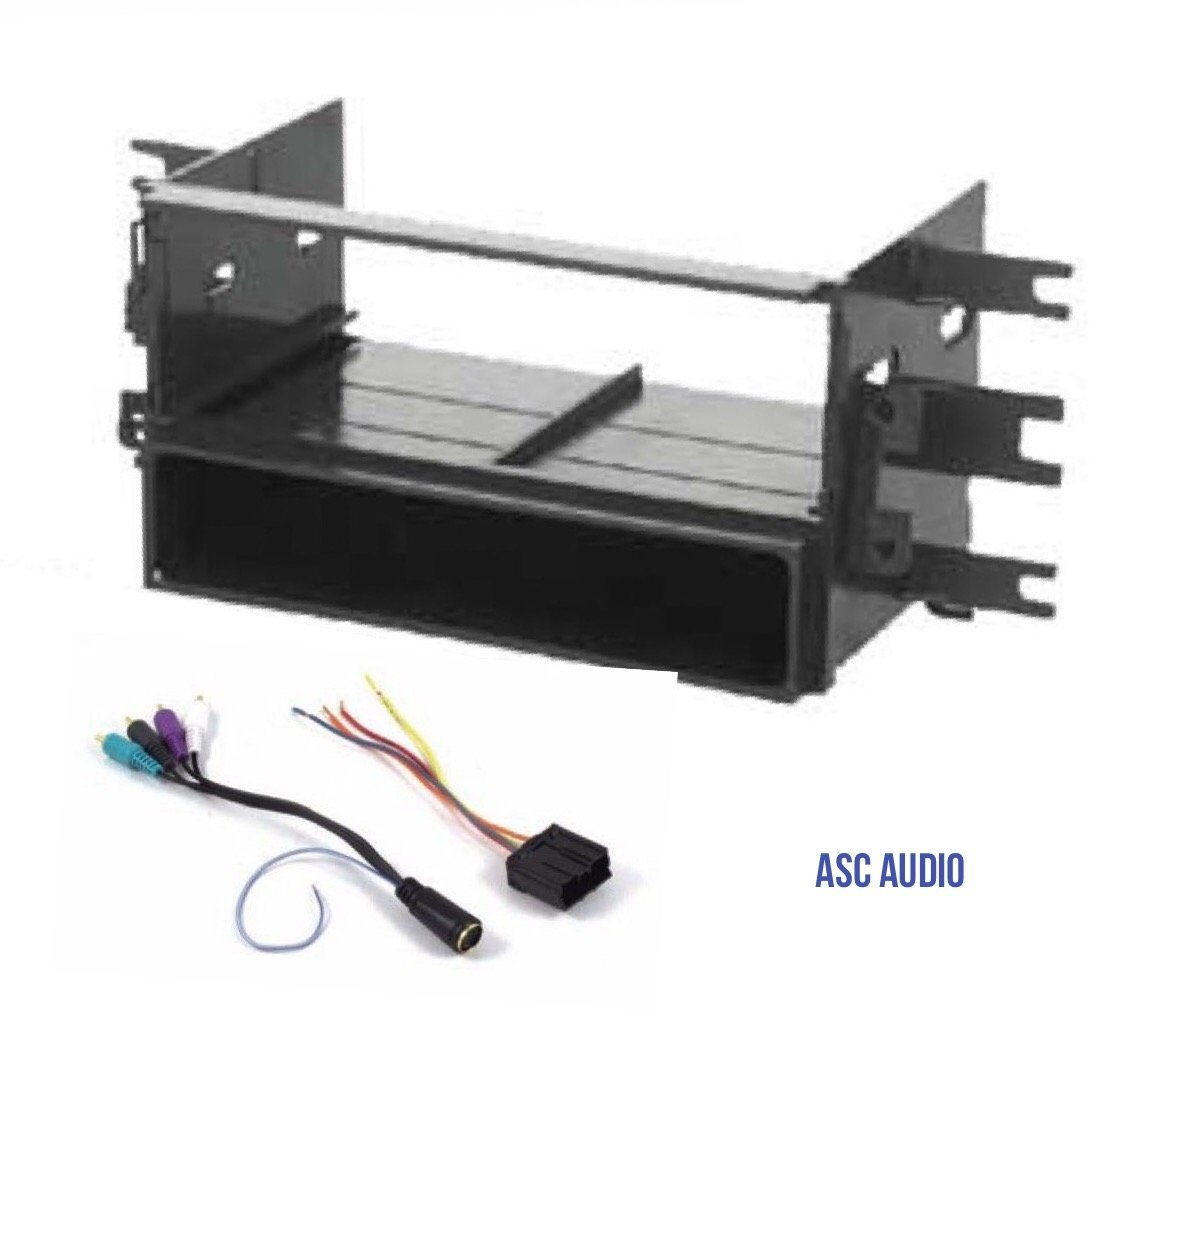 Buy Car Stereo Dash Kit And Wire Harness For Installing A New Single Mitsubishi Audio Din Radio Some